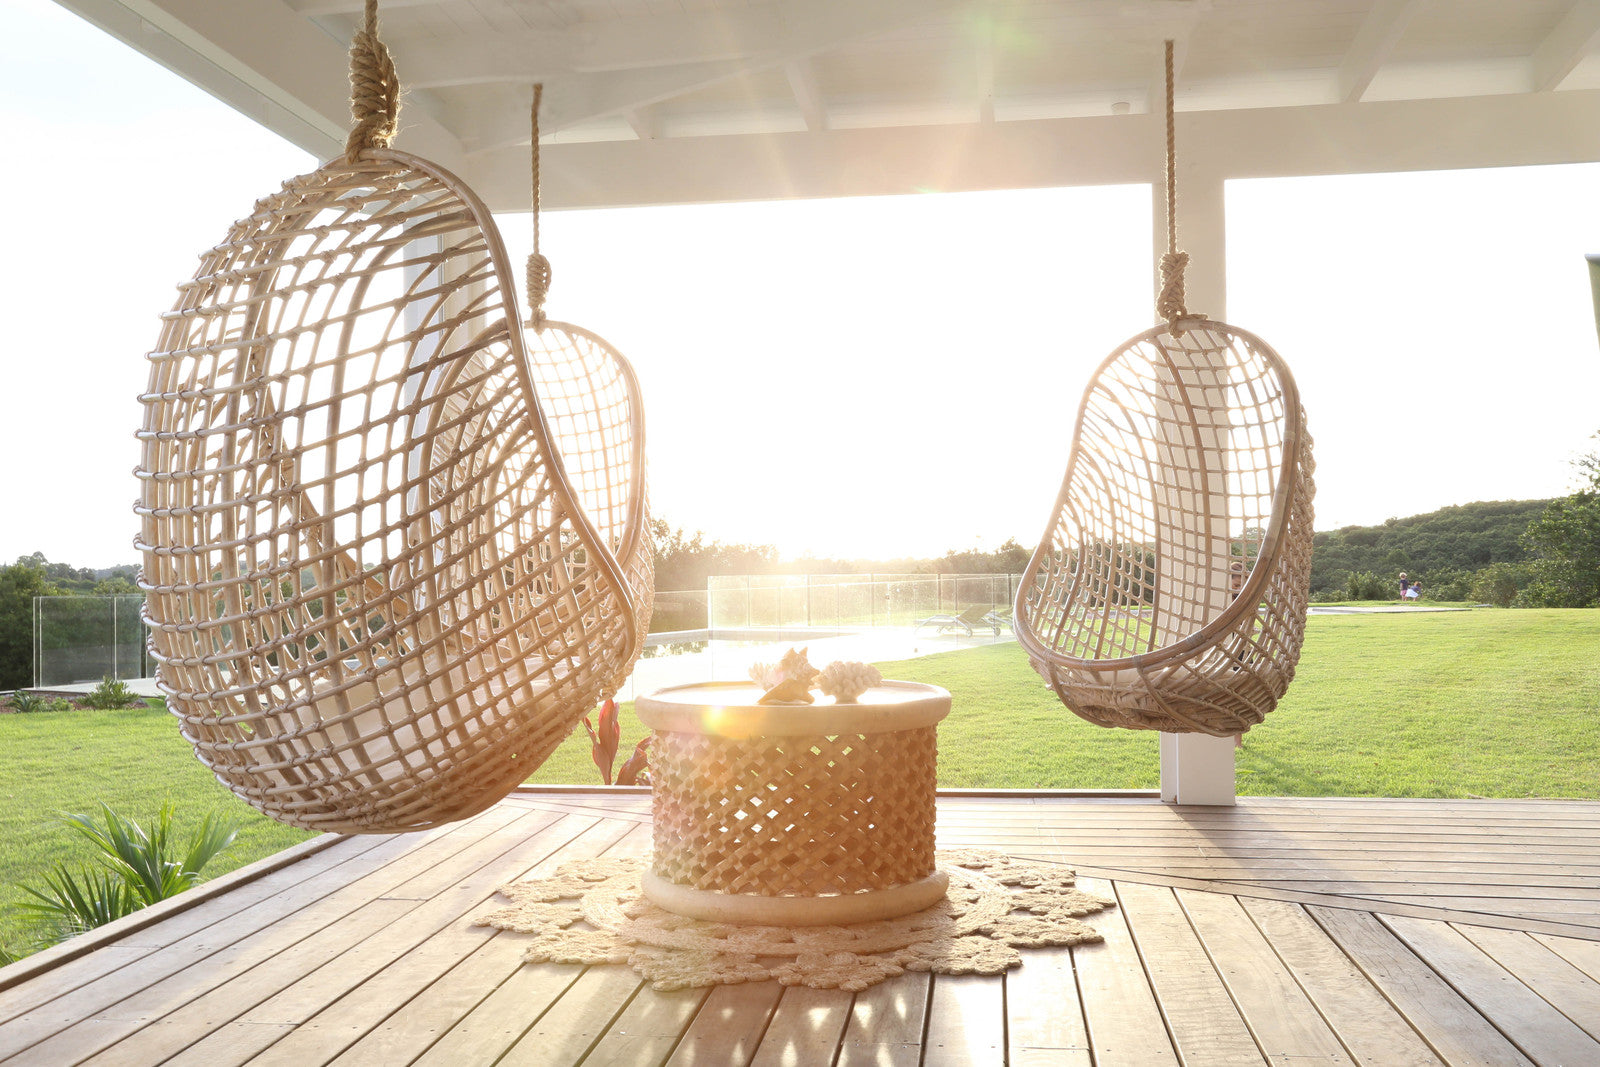 Wooden wicker chairs hanging on a large wooden porch